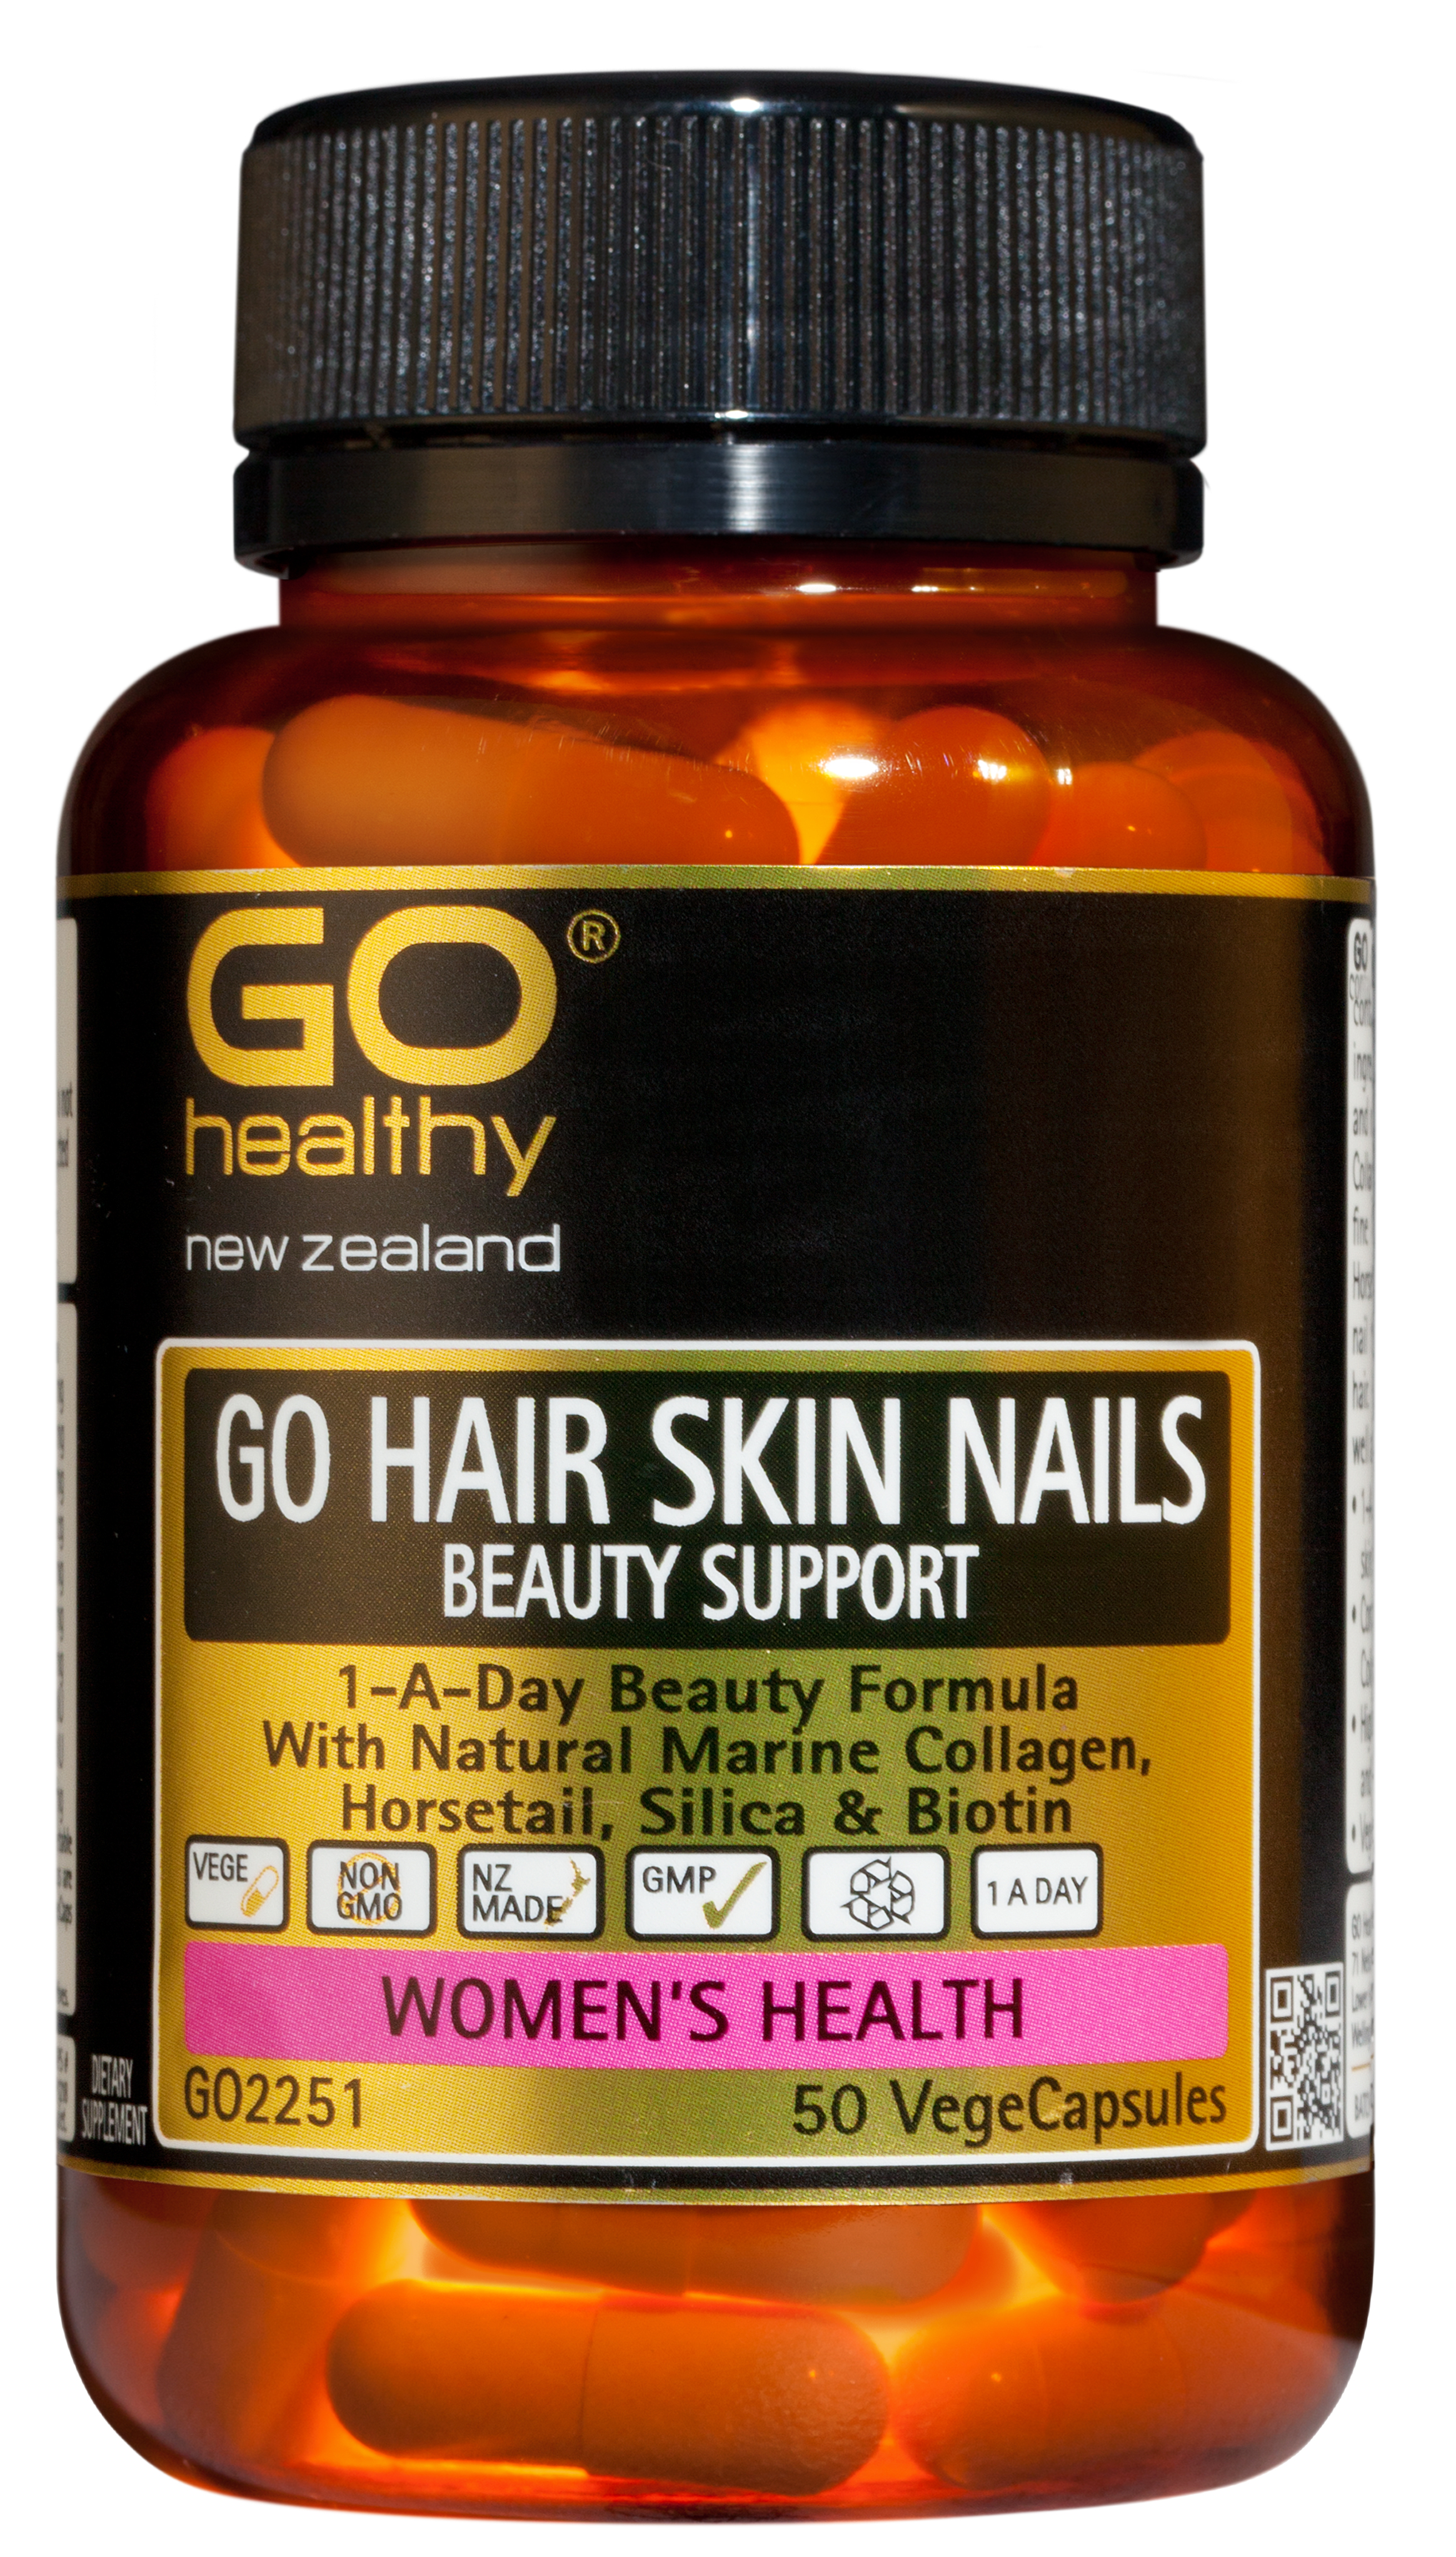 Go Healthy Hair Skin Nails Beauty Support 50 VegeCaps